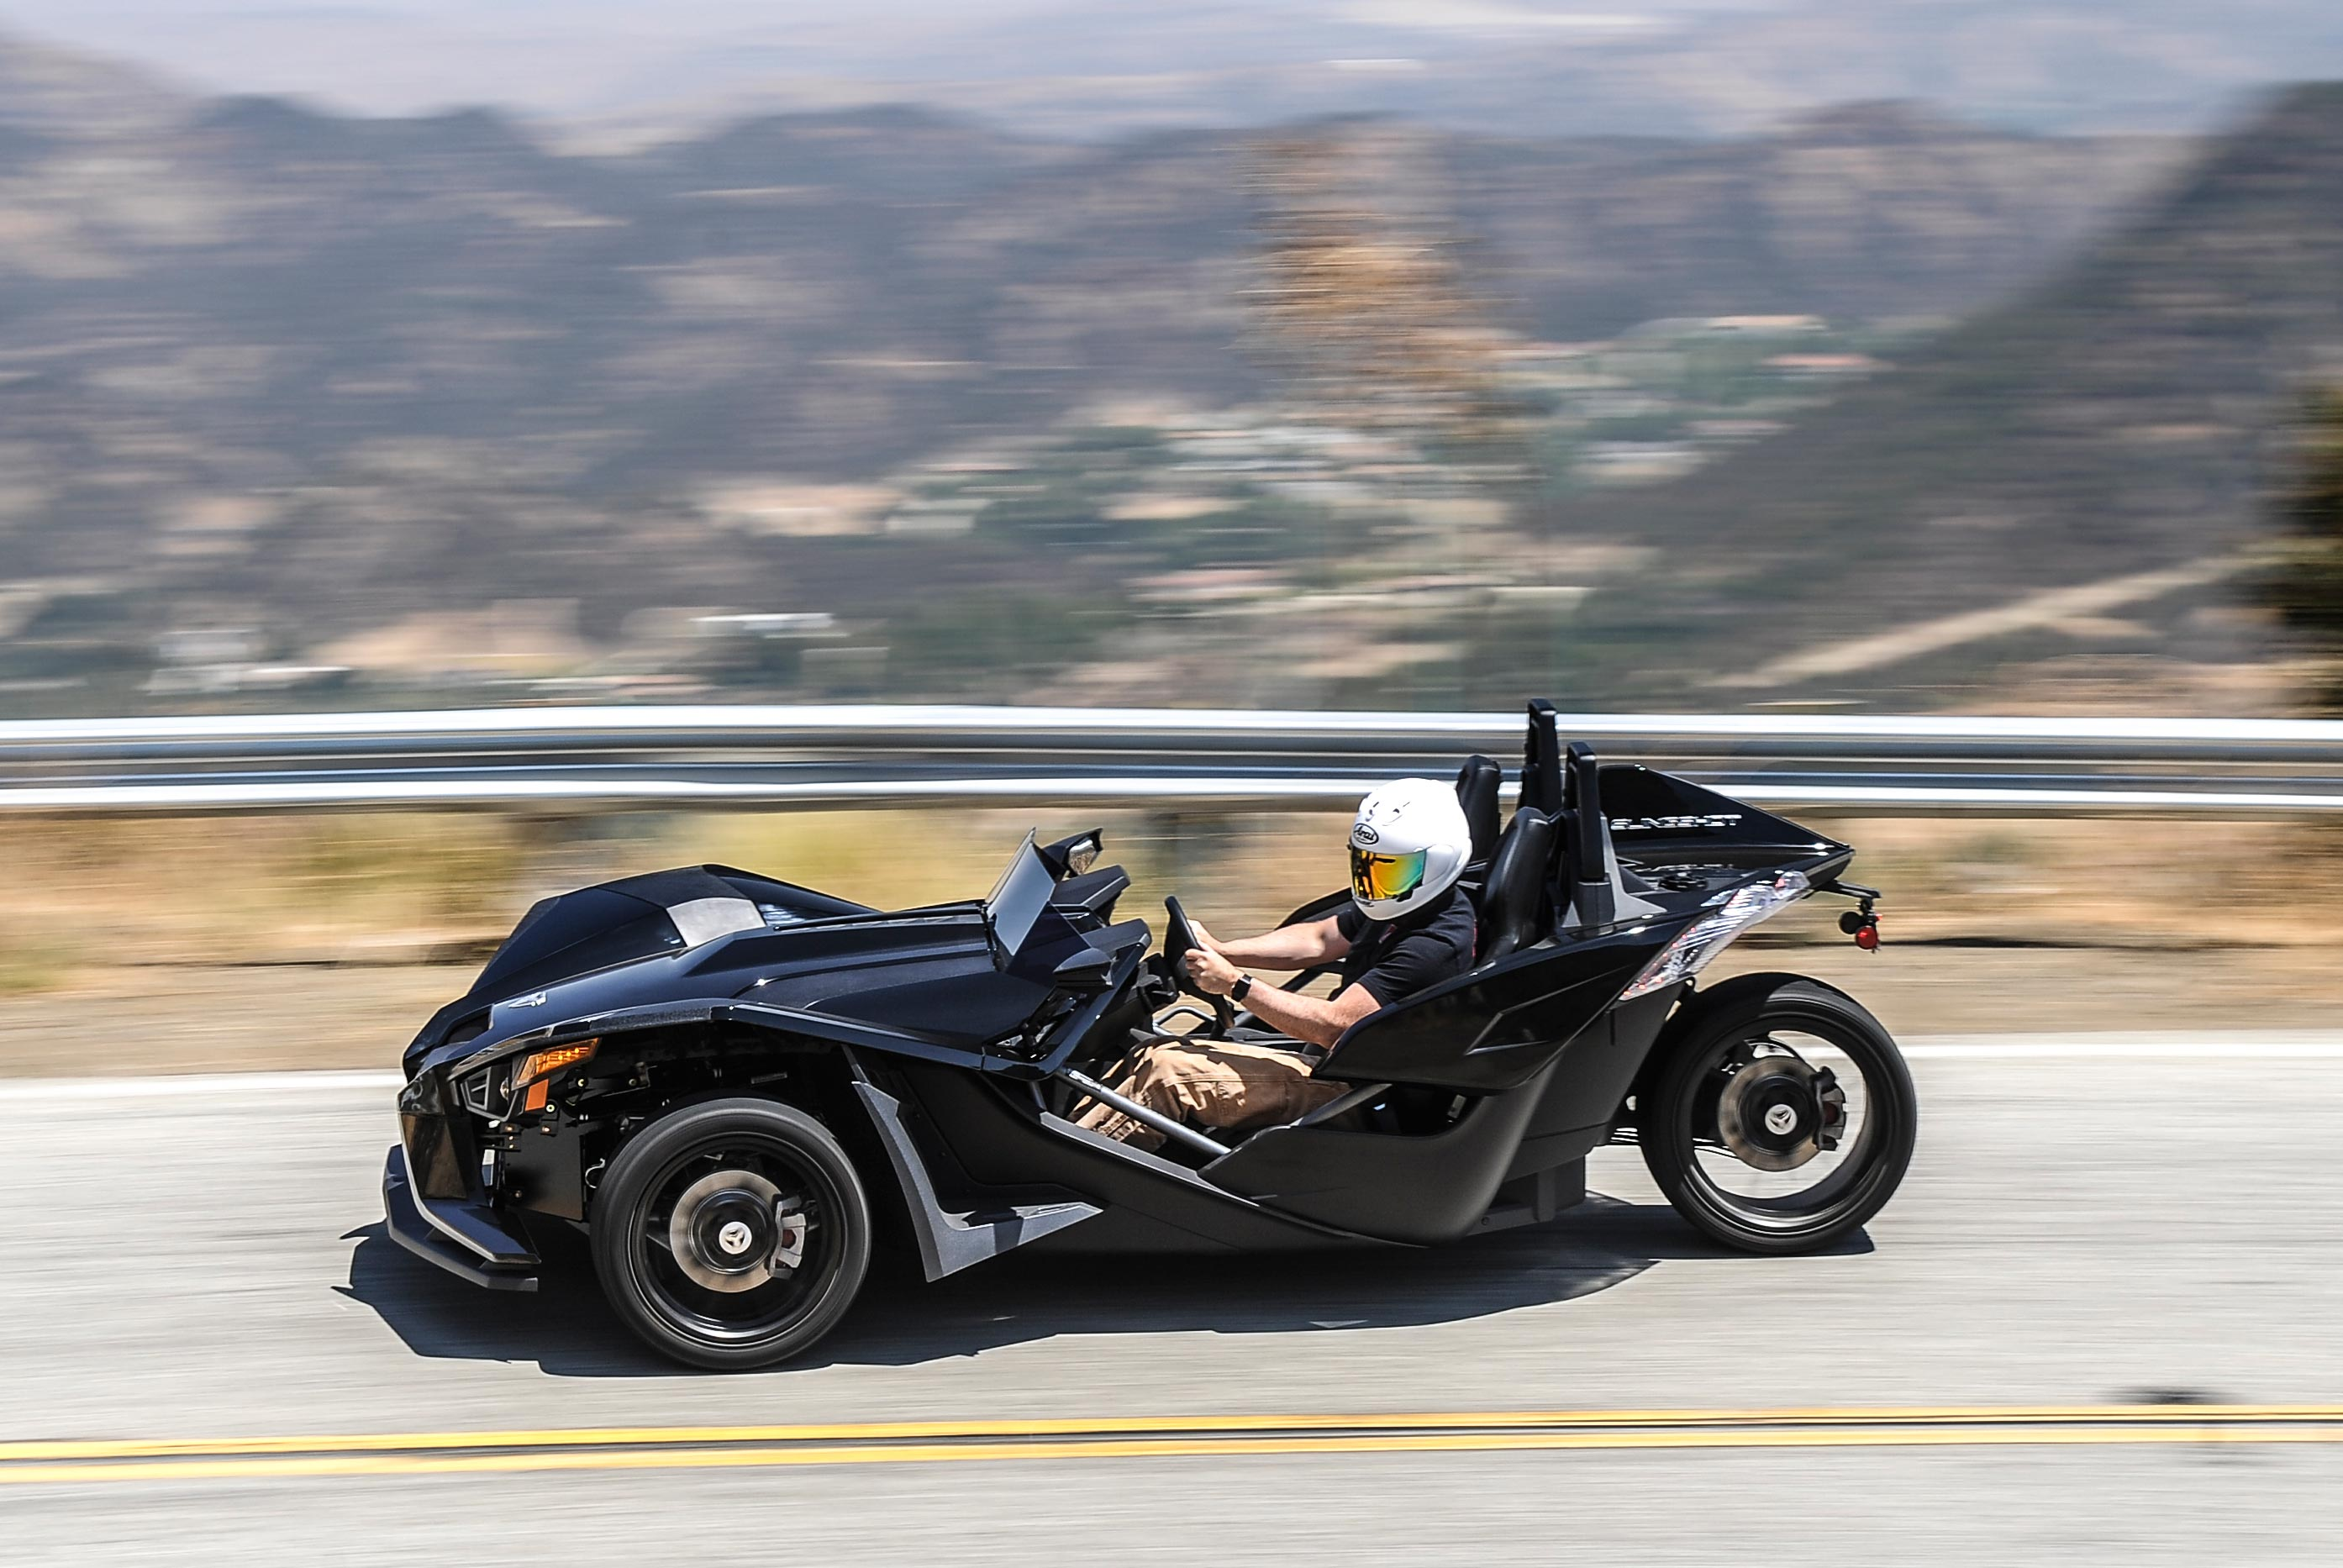 what it 39 s like to drive a motorcycle a review of the polaris slingshot asphalt rubber. Black Bedroom Furniture Sets. Home Design Ideas